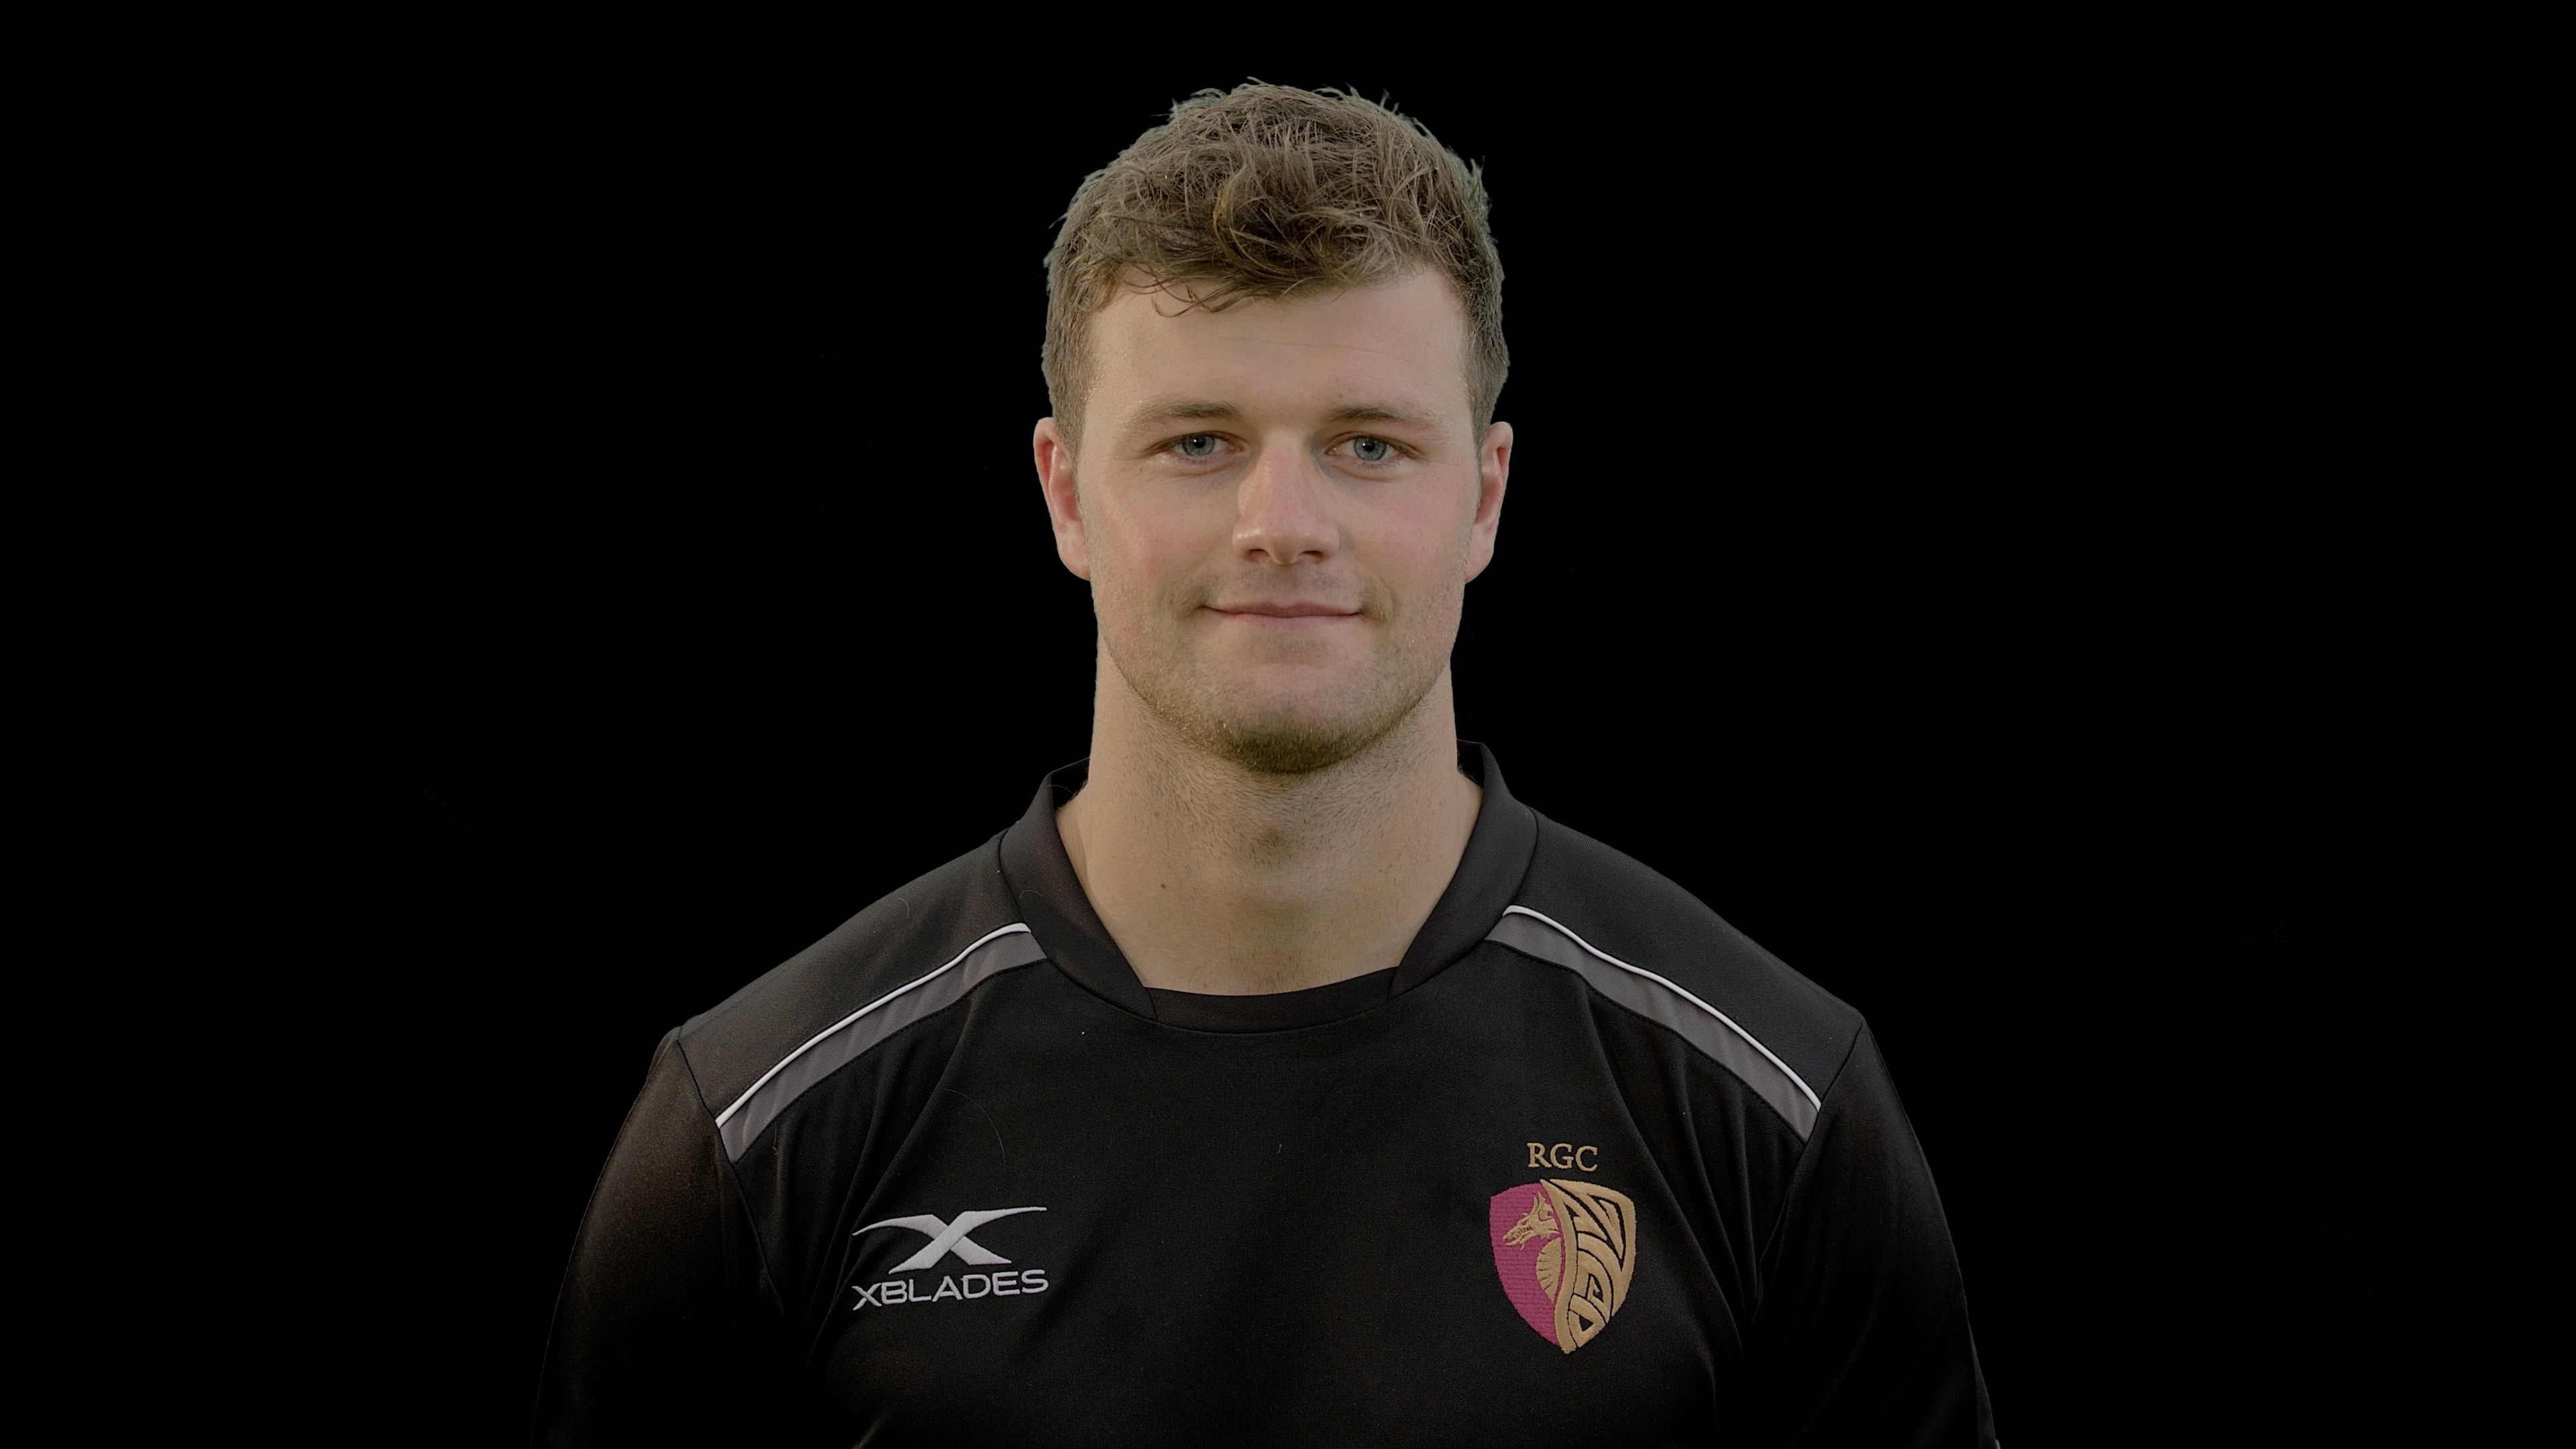 RGC Ready For Cup